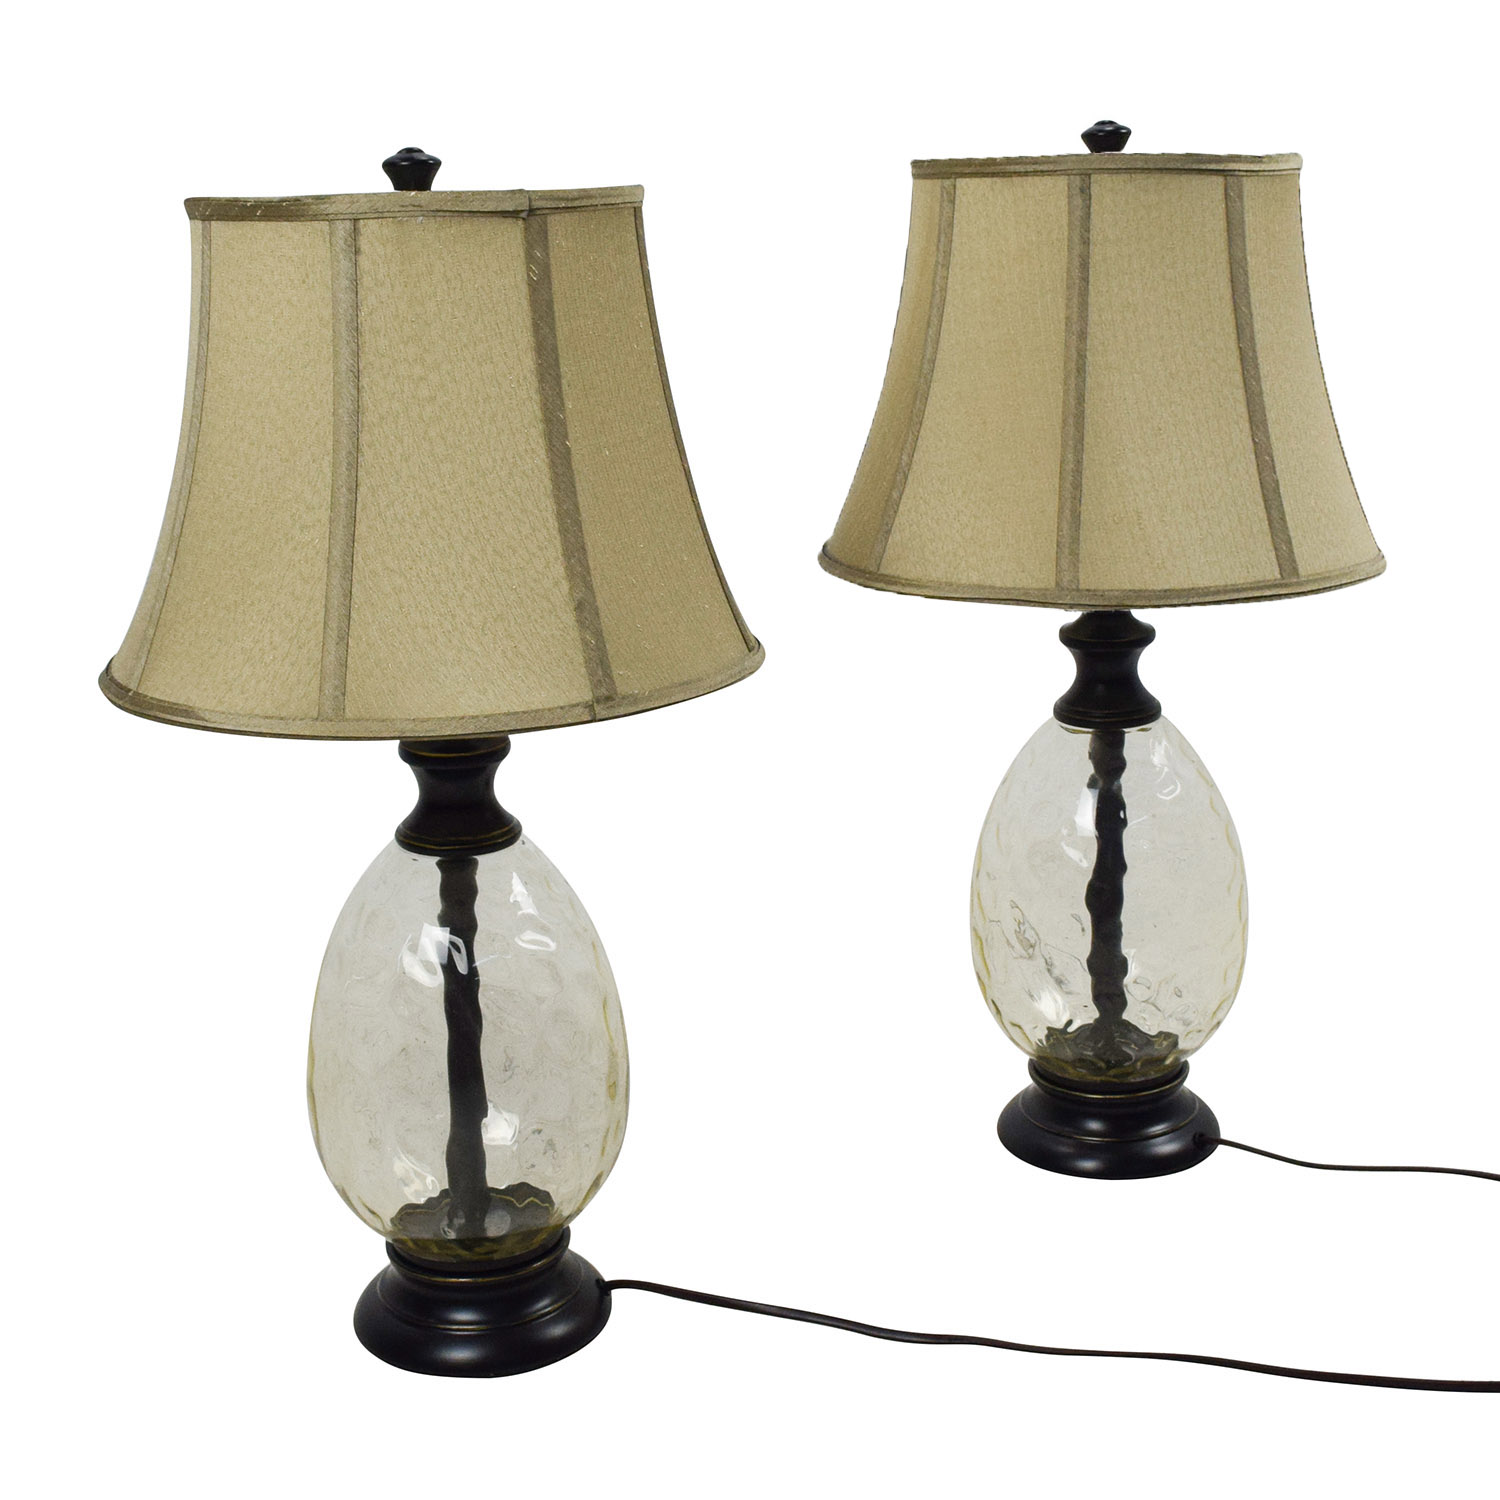 88 Off Wayfair Wayfair Gaulke Table Lamp Pair Decor